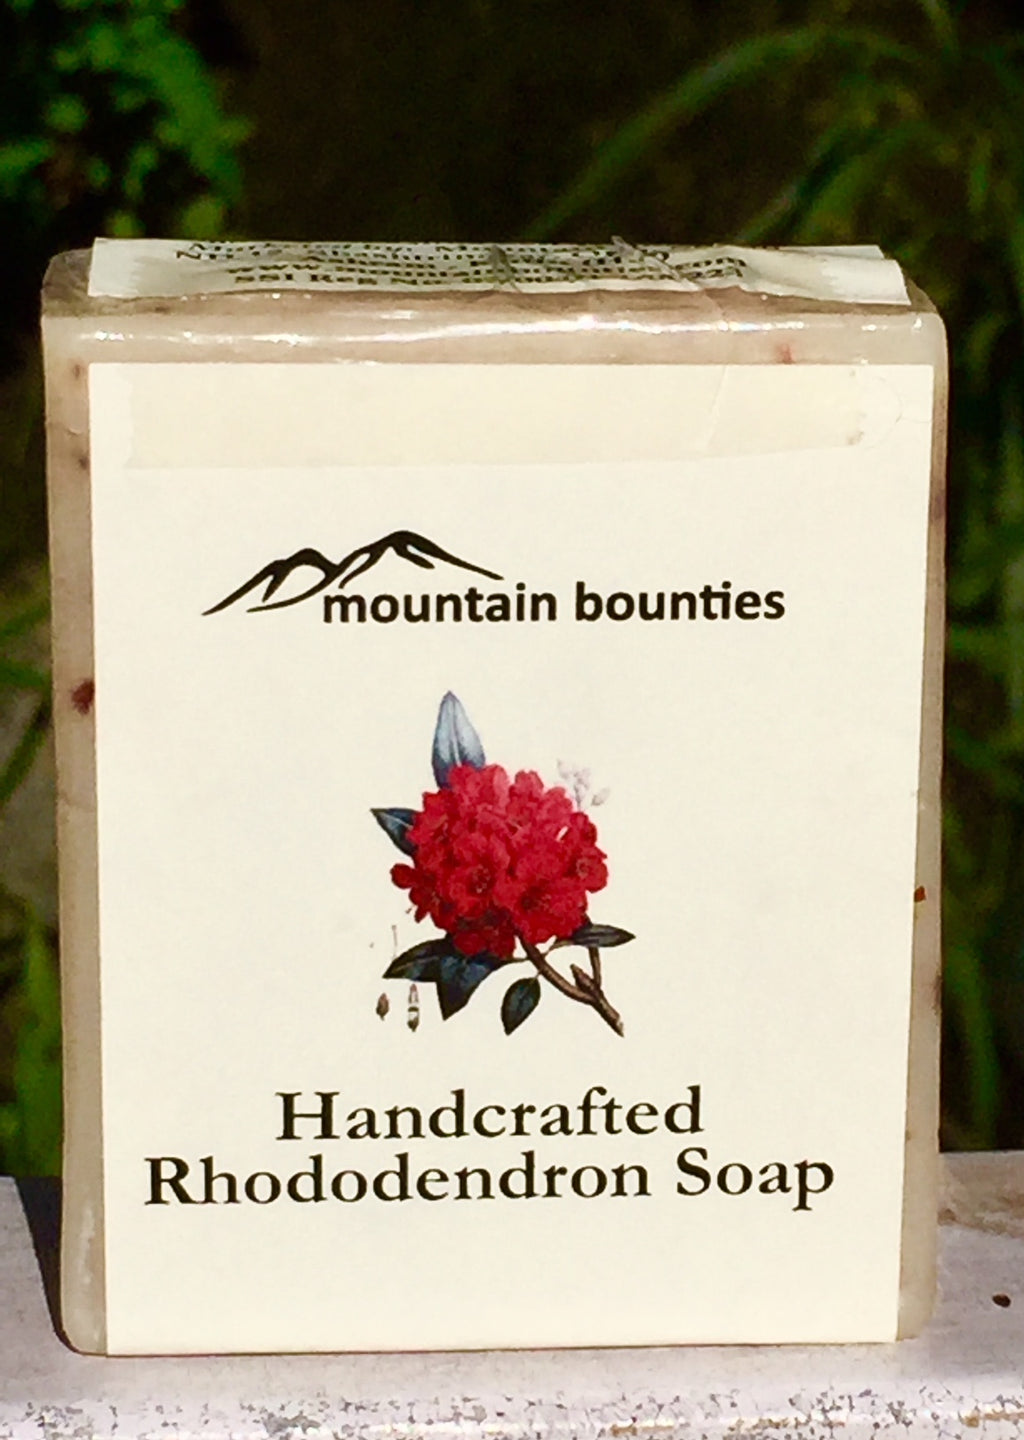 Handcrafted Rhododendron Soap